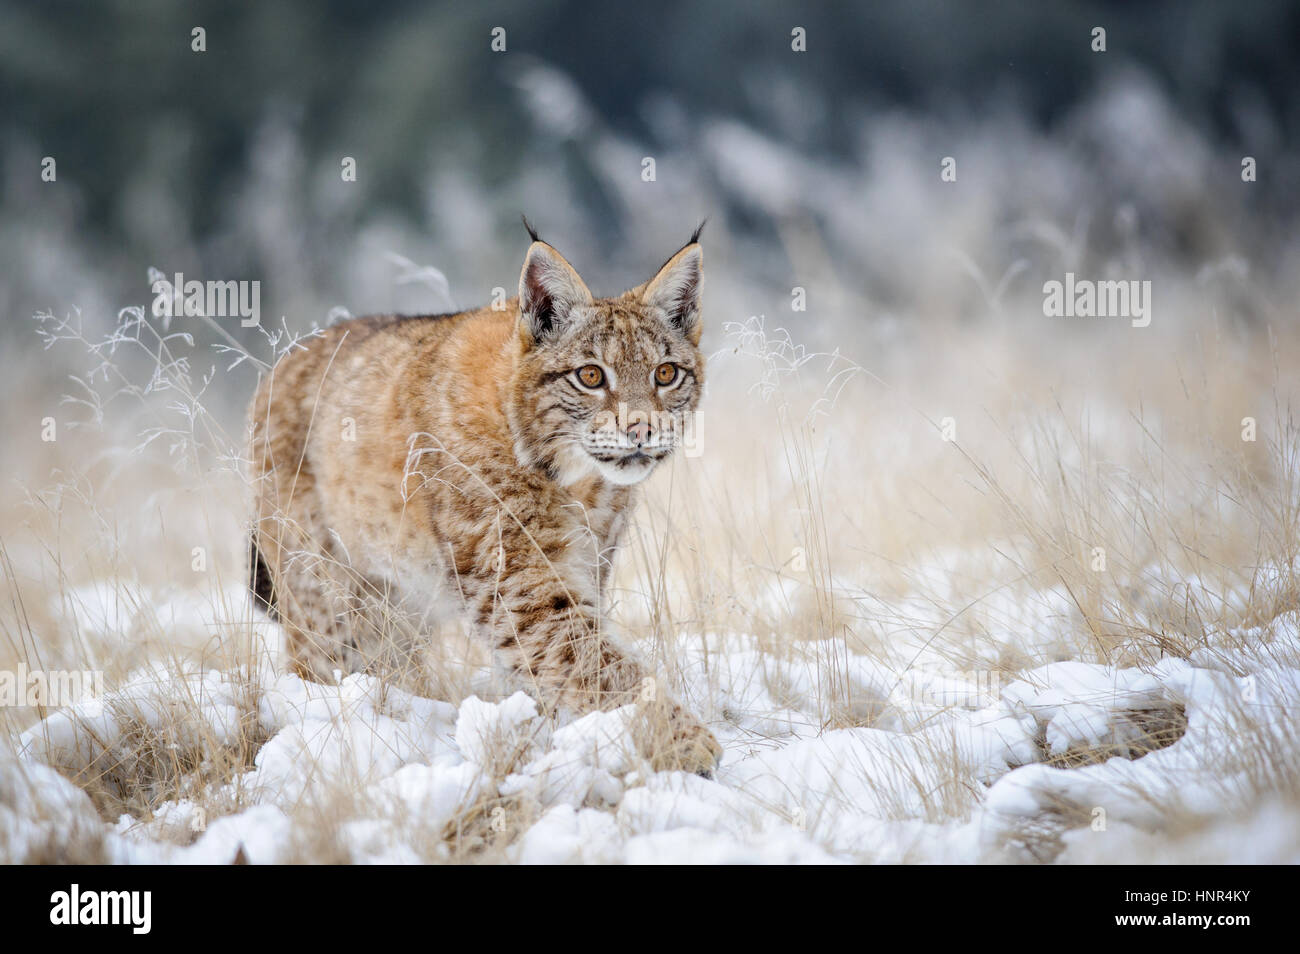 Eurasian lynx cub walking on snow with high yellow grass on background. Cold winter season. Freezy weather. Stock Photo